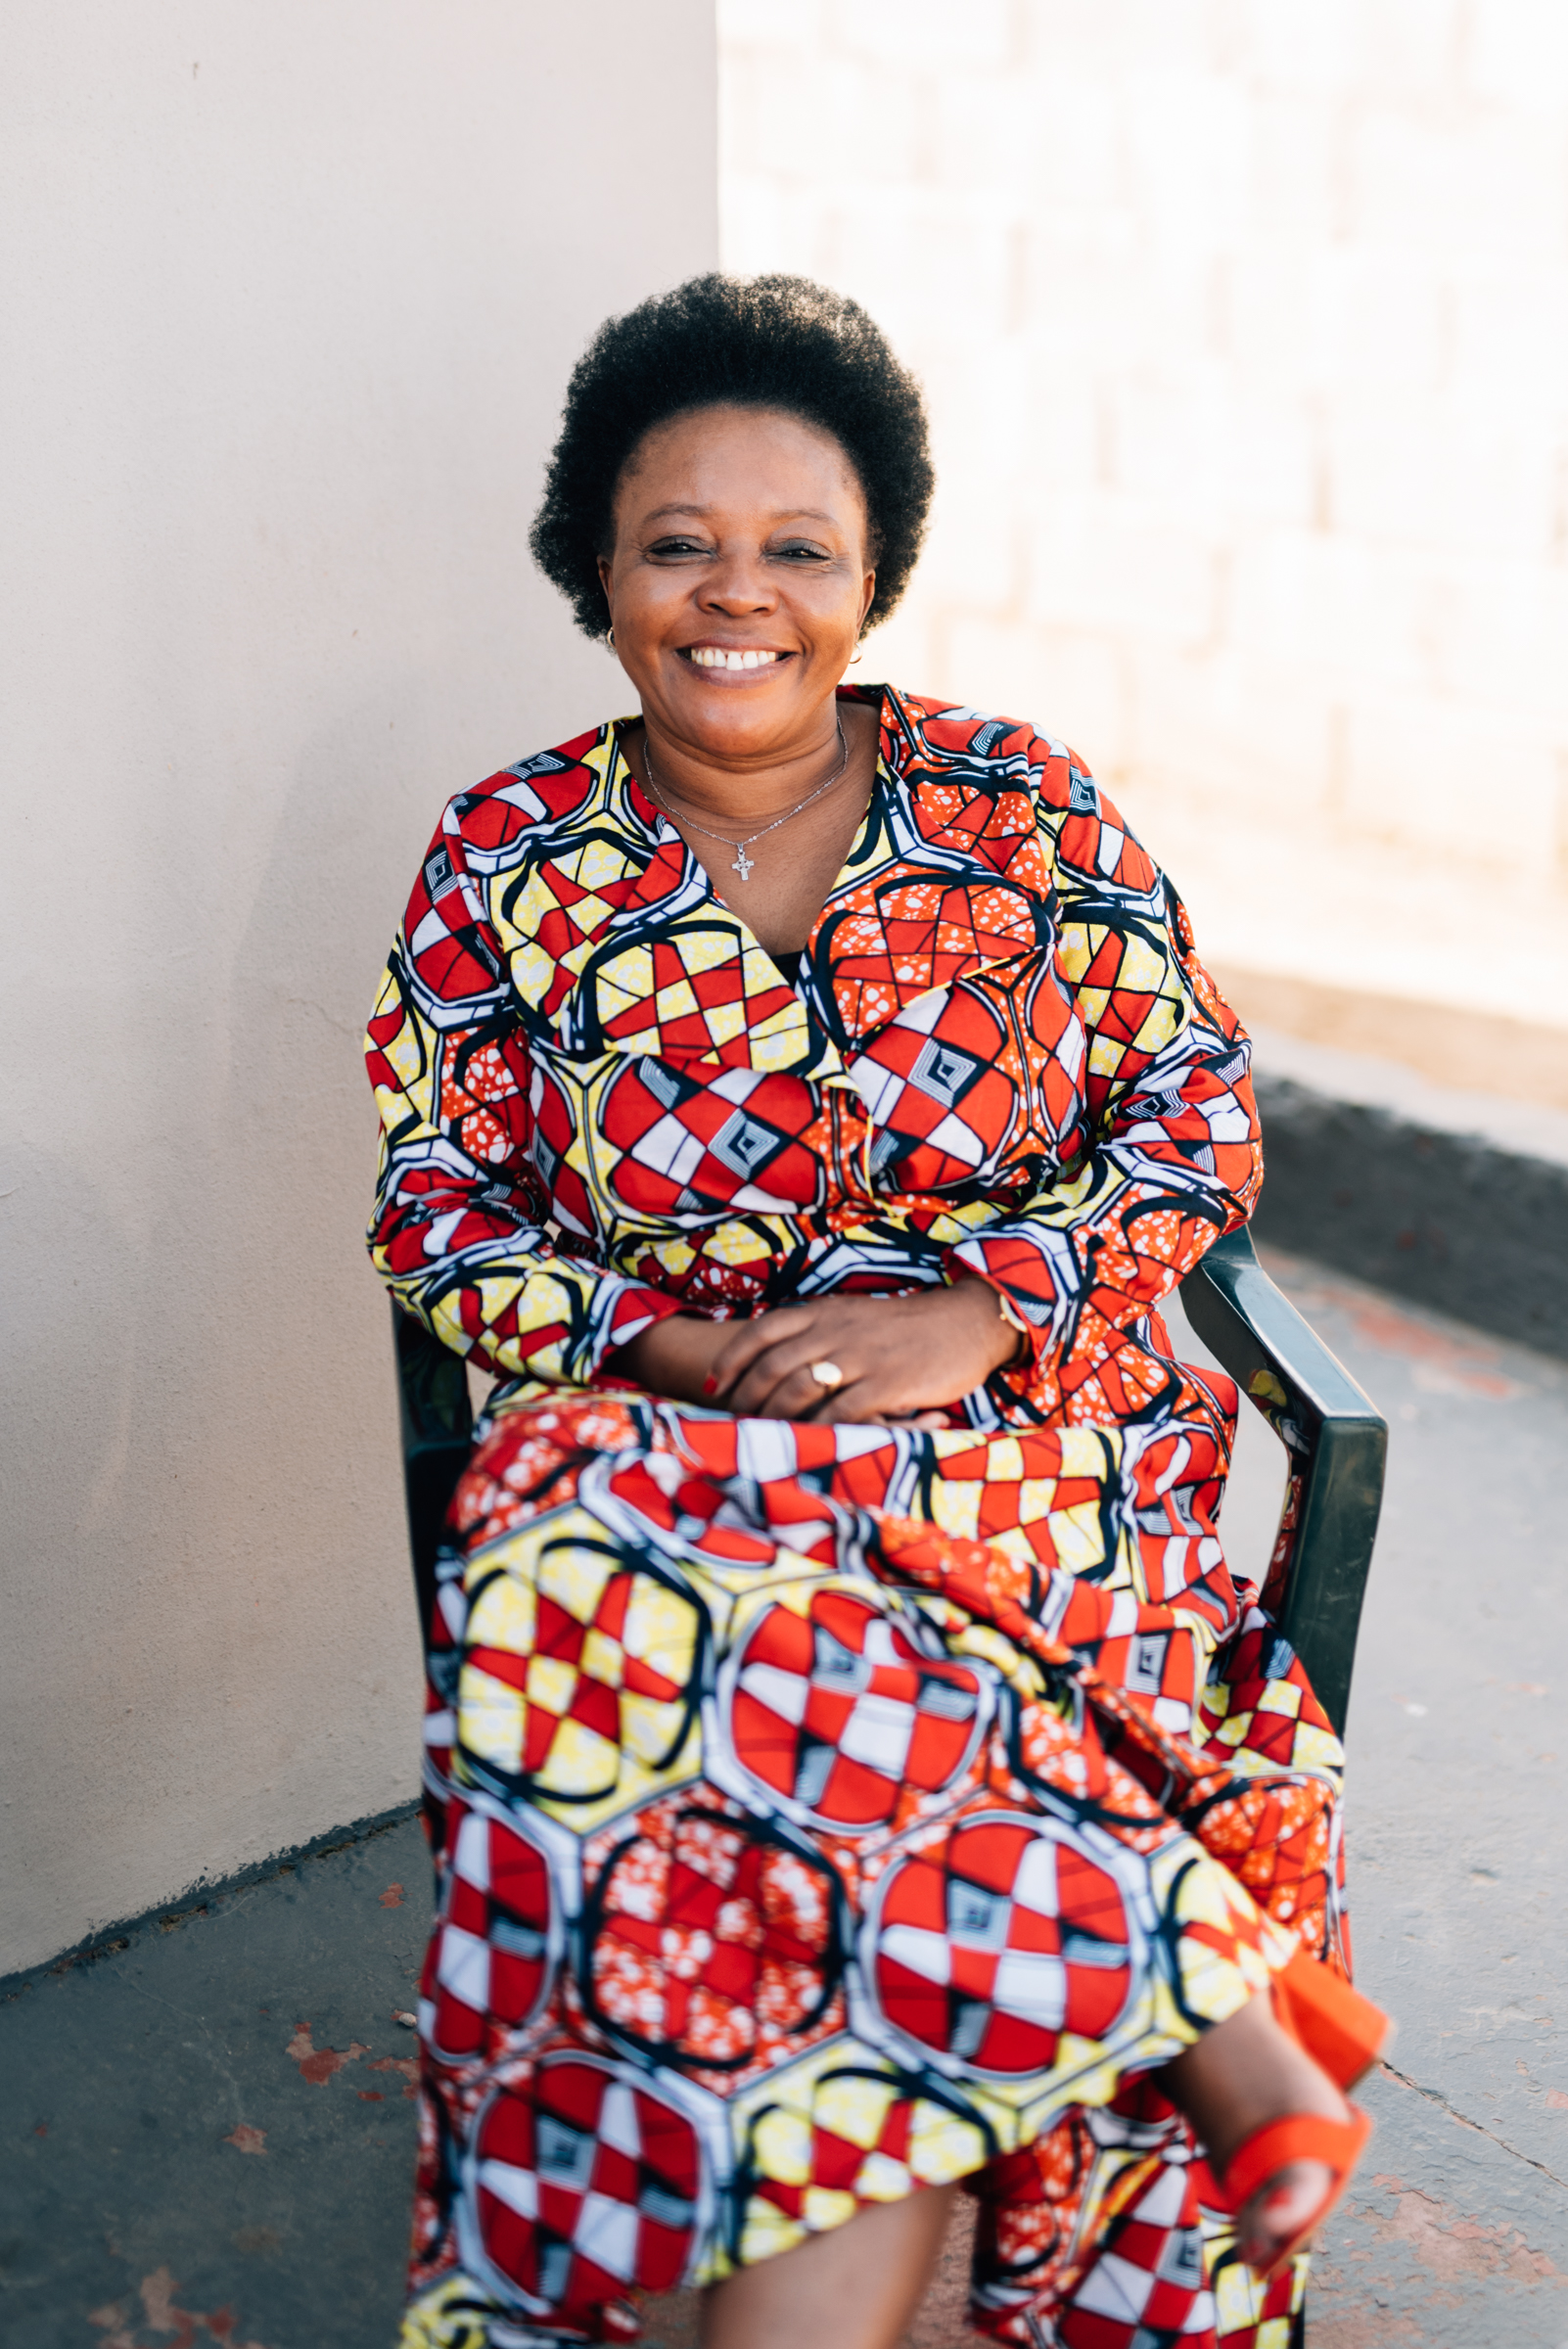 Thokozani Poswa - I love my job- Phakamisa [WDR Partner] is part of me, it is in me!I love my Gogos (care-givers) and my staff. At Phakamisa we reach many with just a few. My vision for Phakamisa is to have more space, to run HIV programmes, early childhood development programmes... to have a shop for our Gogos to sell their crafts.Director at Phakamisa, Pinetown, South Africa.